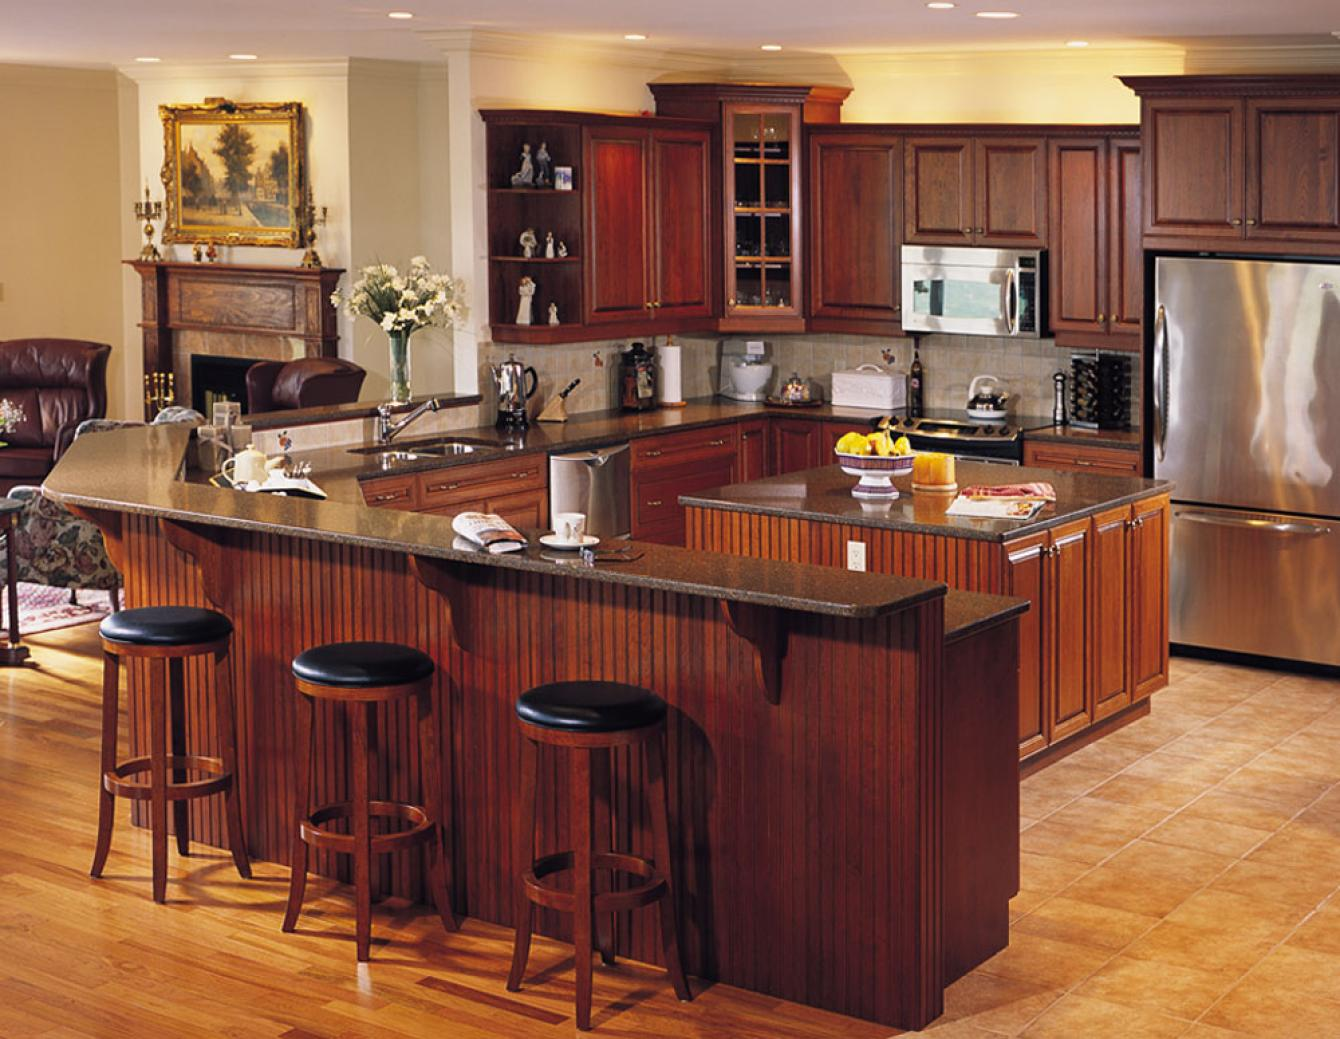 design kitchen picture kitchen design gallery triangle kitchen 662